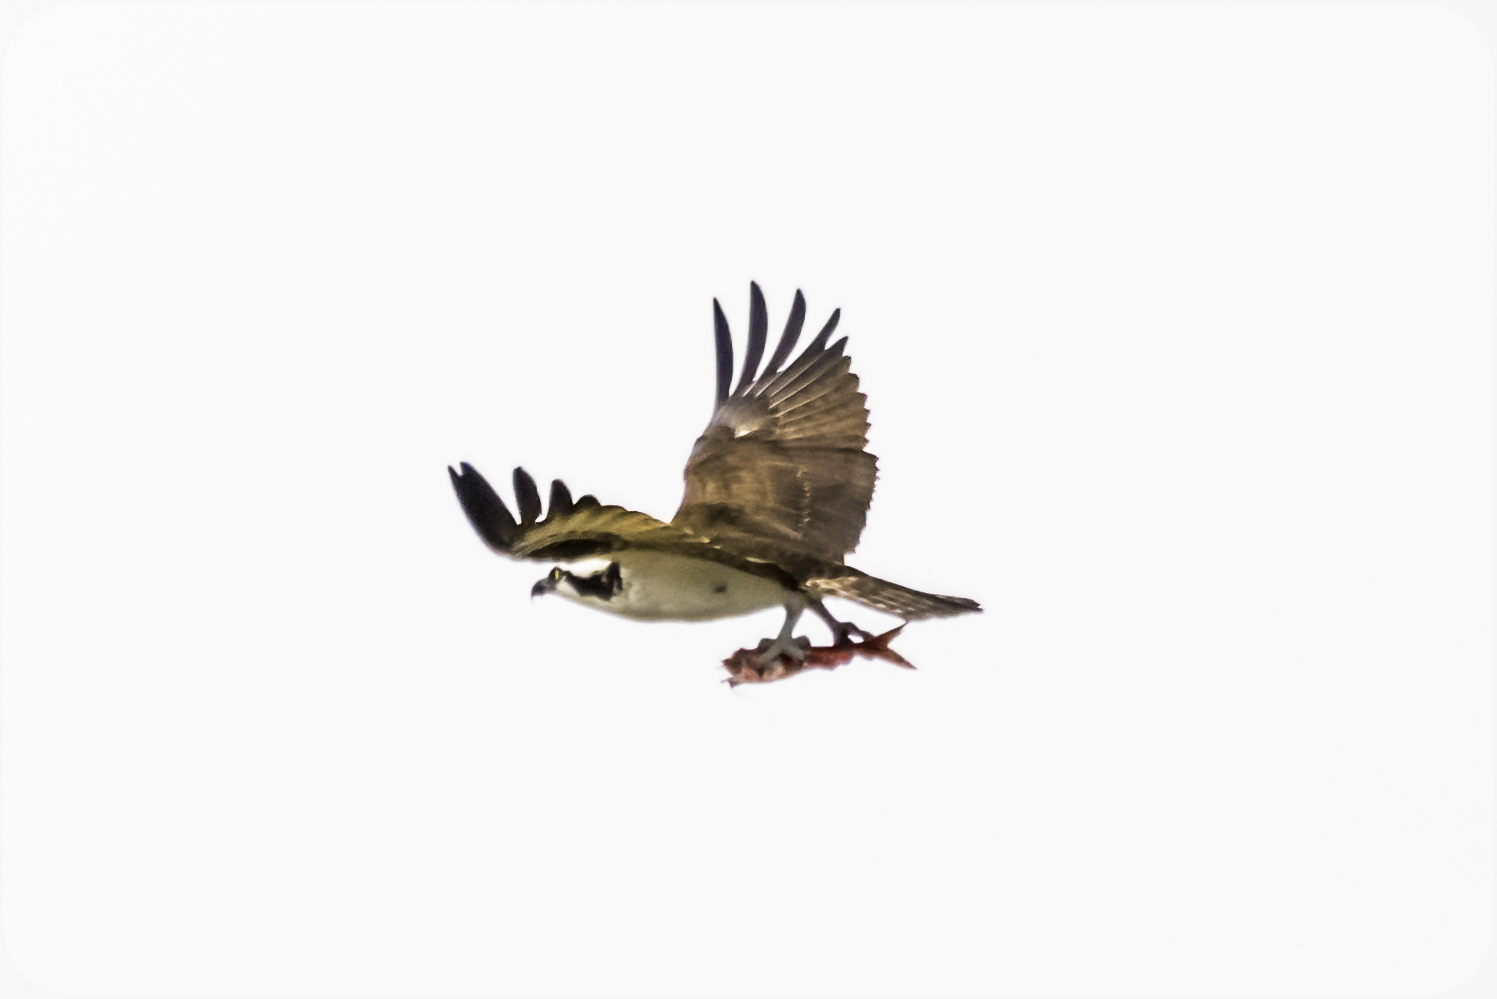 Osprey in flight, carrying a fish in its talons, arranged aerodynamically